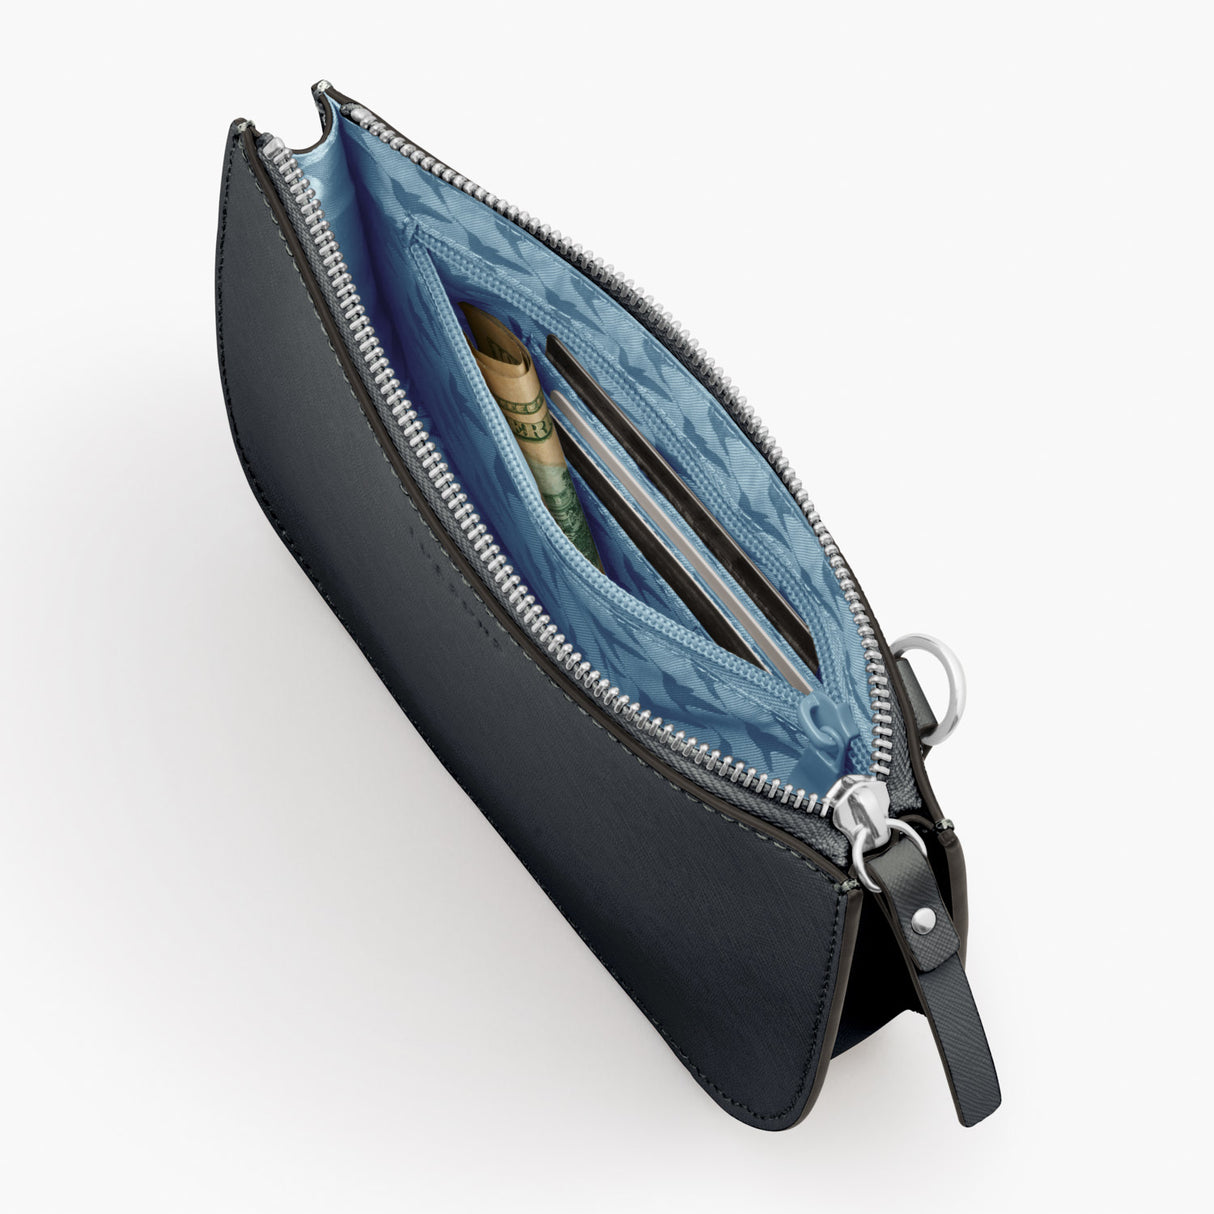 Interior Zipper - Waverley 2 - Saffiano Leather - Dark Grey / Silver / Azure - Crossbody Bag - Lo & Sons